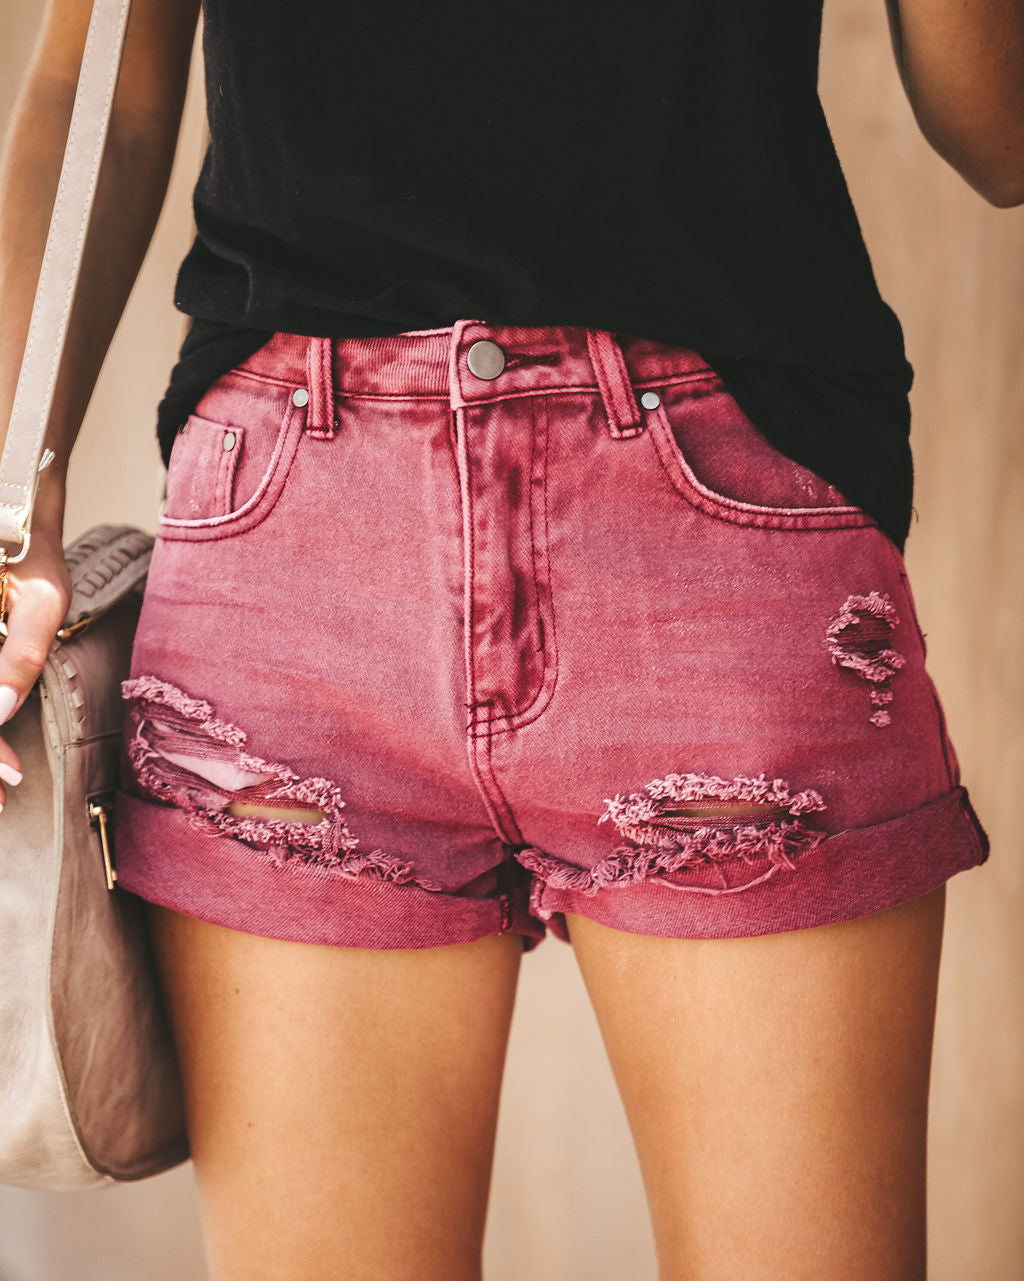 fb991fb501 Stagecoach Distressed Cuffed Denim Shorts - Burgundy - FINAL SALE – VICI